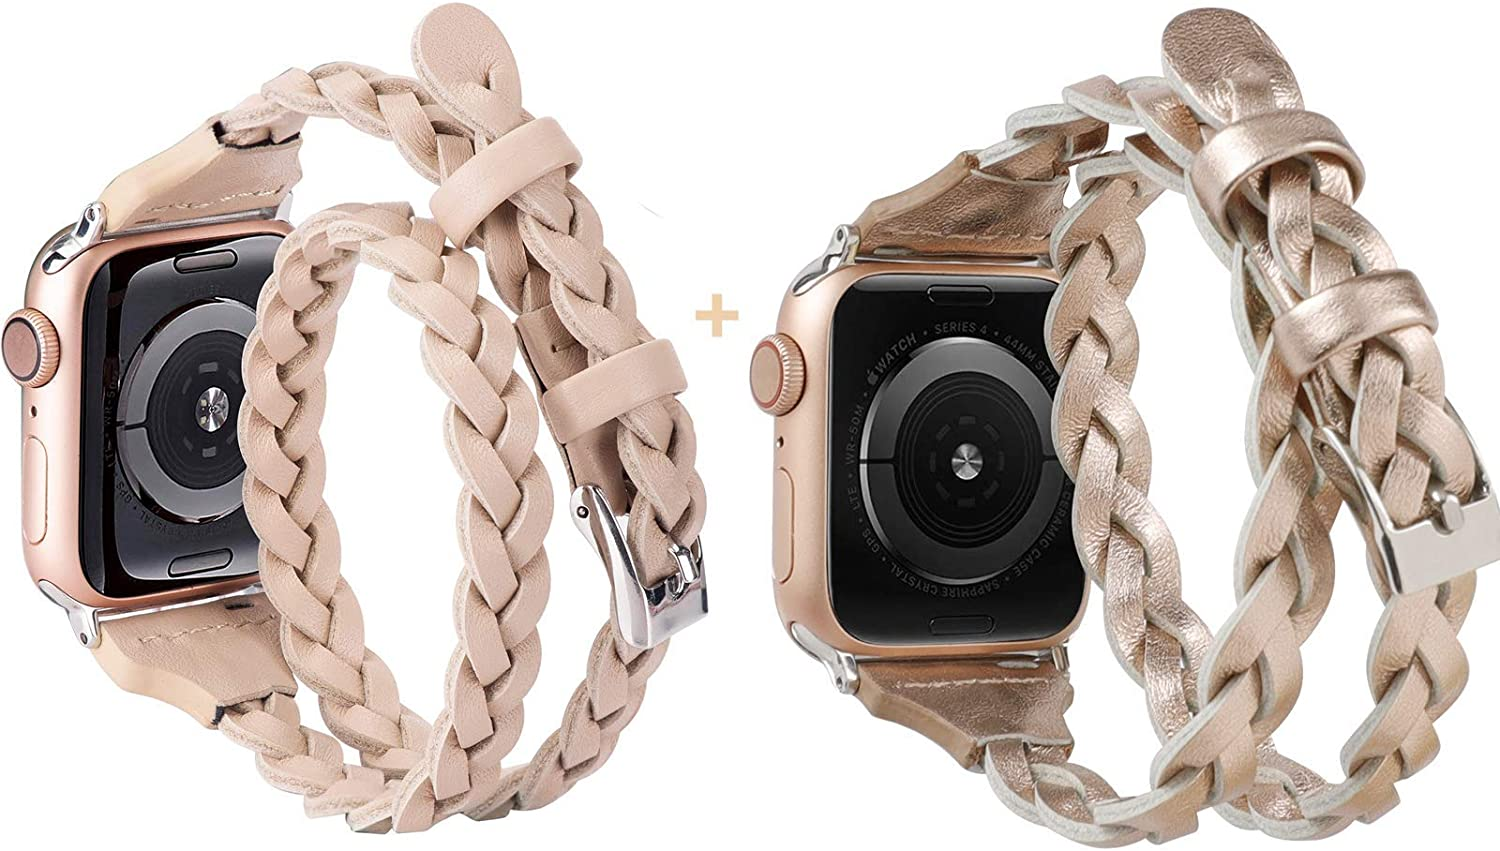 Moolia Double Leather Band Compatible with Apple Watch 38mm 40mm, Women Girls Woven Slim Leather Watch Strap Double Tour Bracelet Replacement for iWatch Series 6 5 4 3 2 1/SE